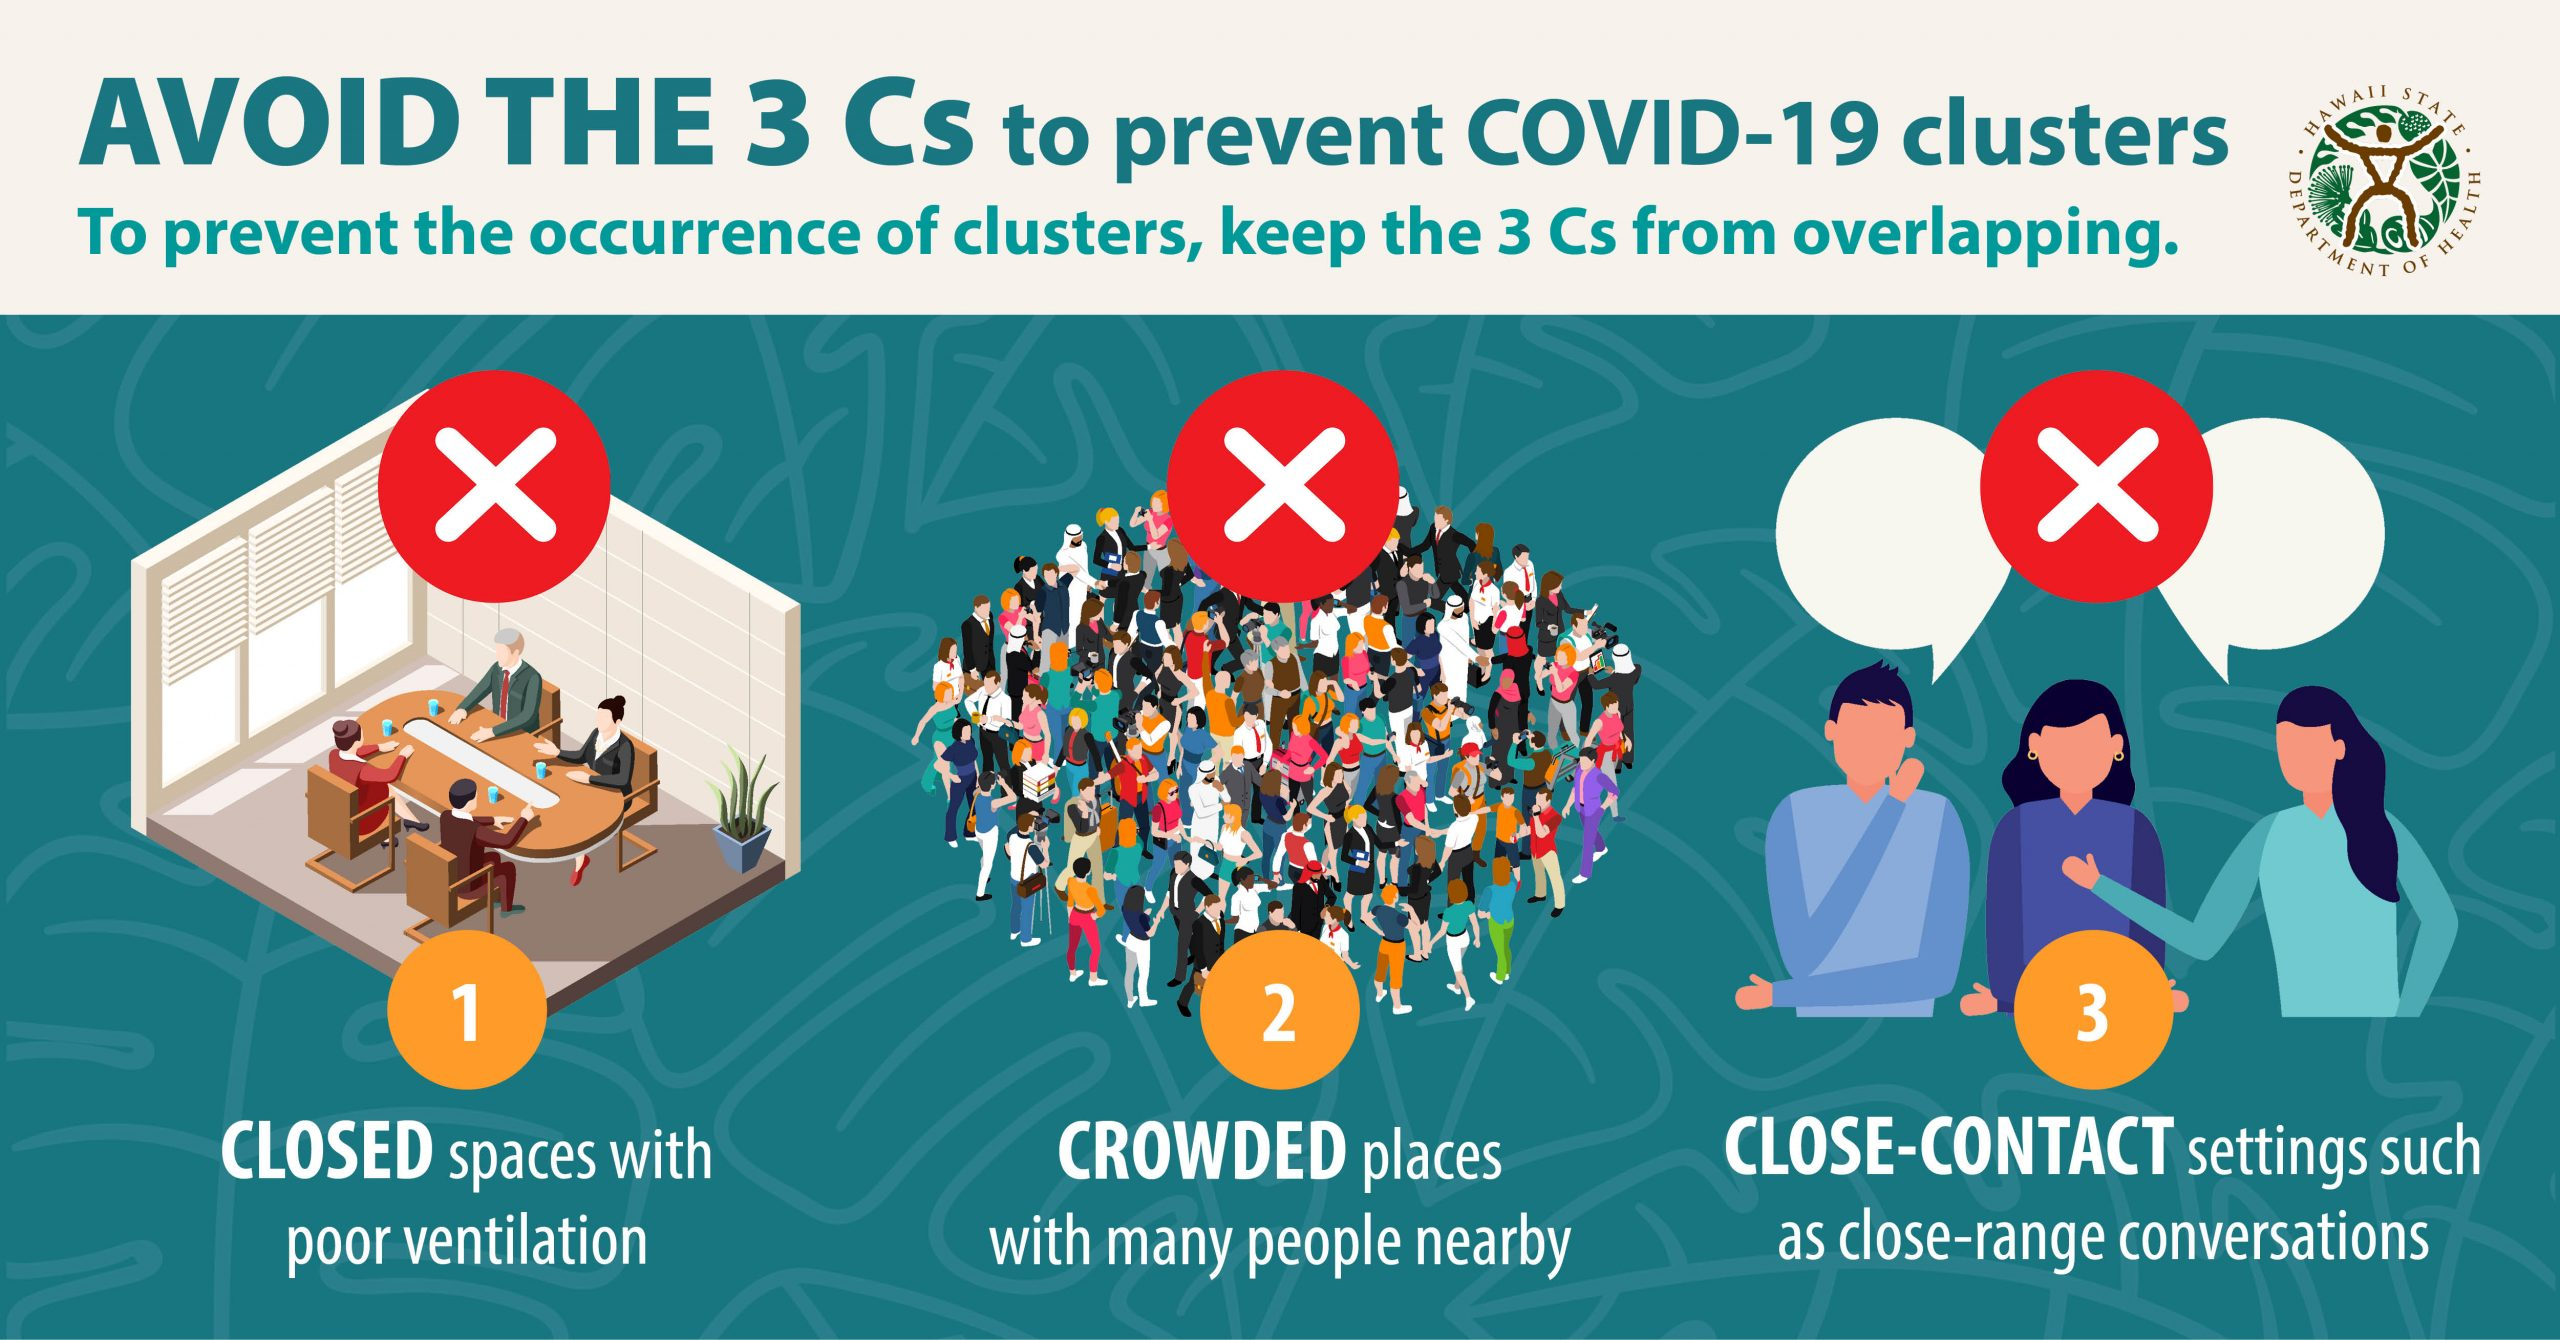 Avoid the 3 Cs to prevent COVID-19 clusters - To prevent the occurrence of clusters, keep the 3 Cs from overlapping. 1. Closed spaces with poor ventilation 2. Crowded places with many people nearby 3. Close-contact settings such as close-range conversations